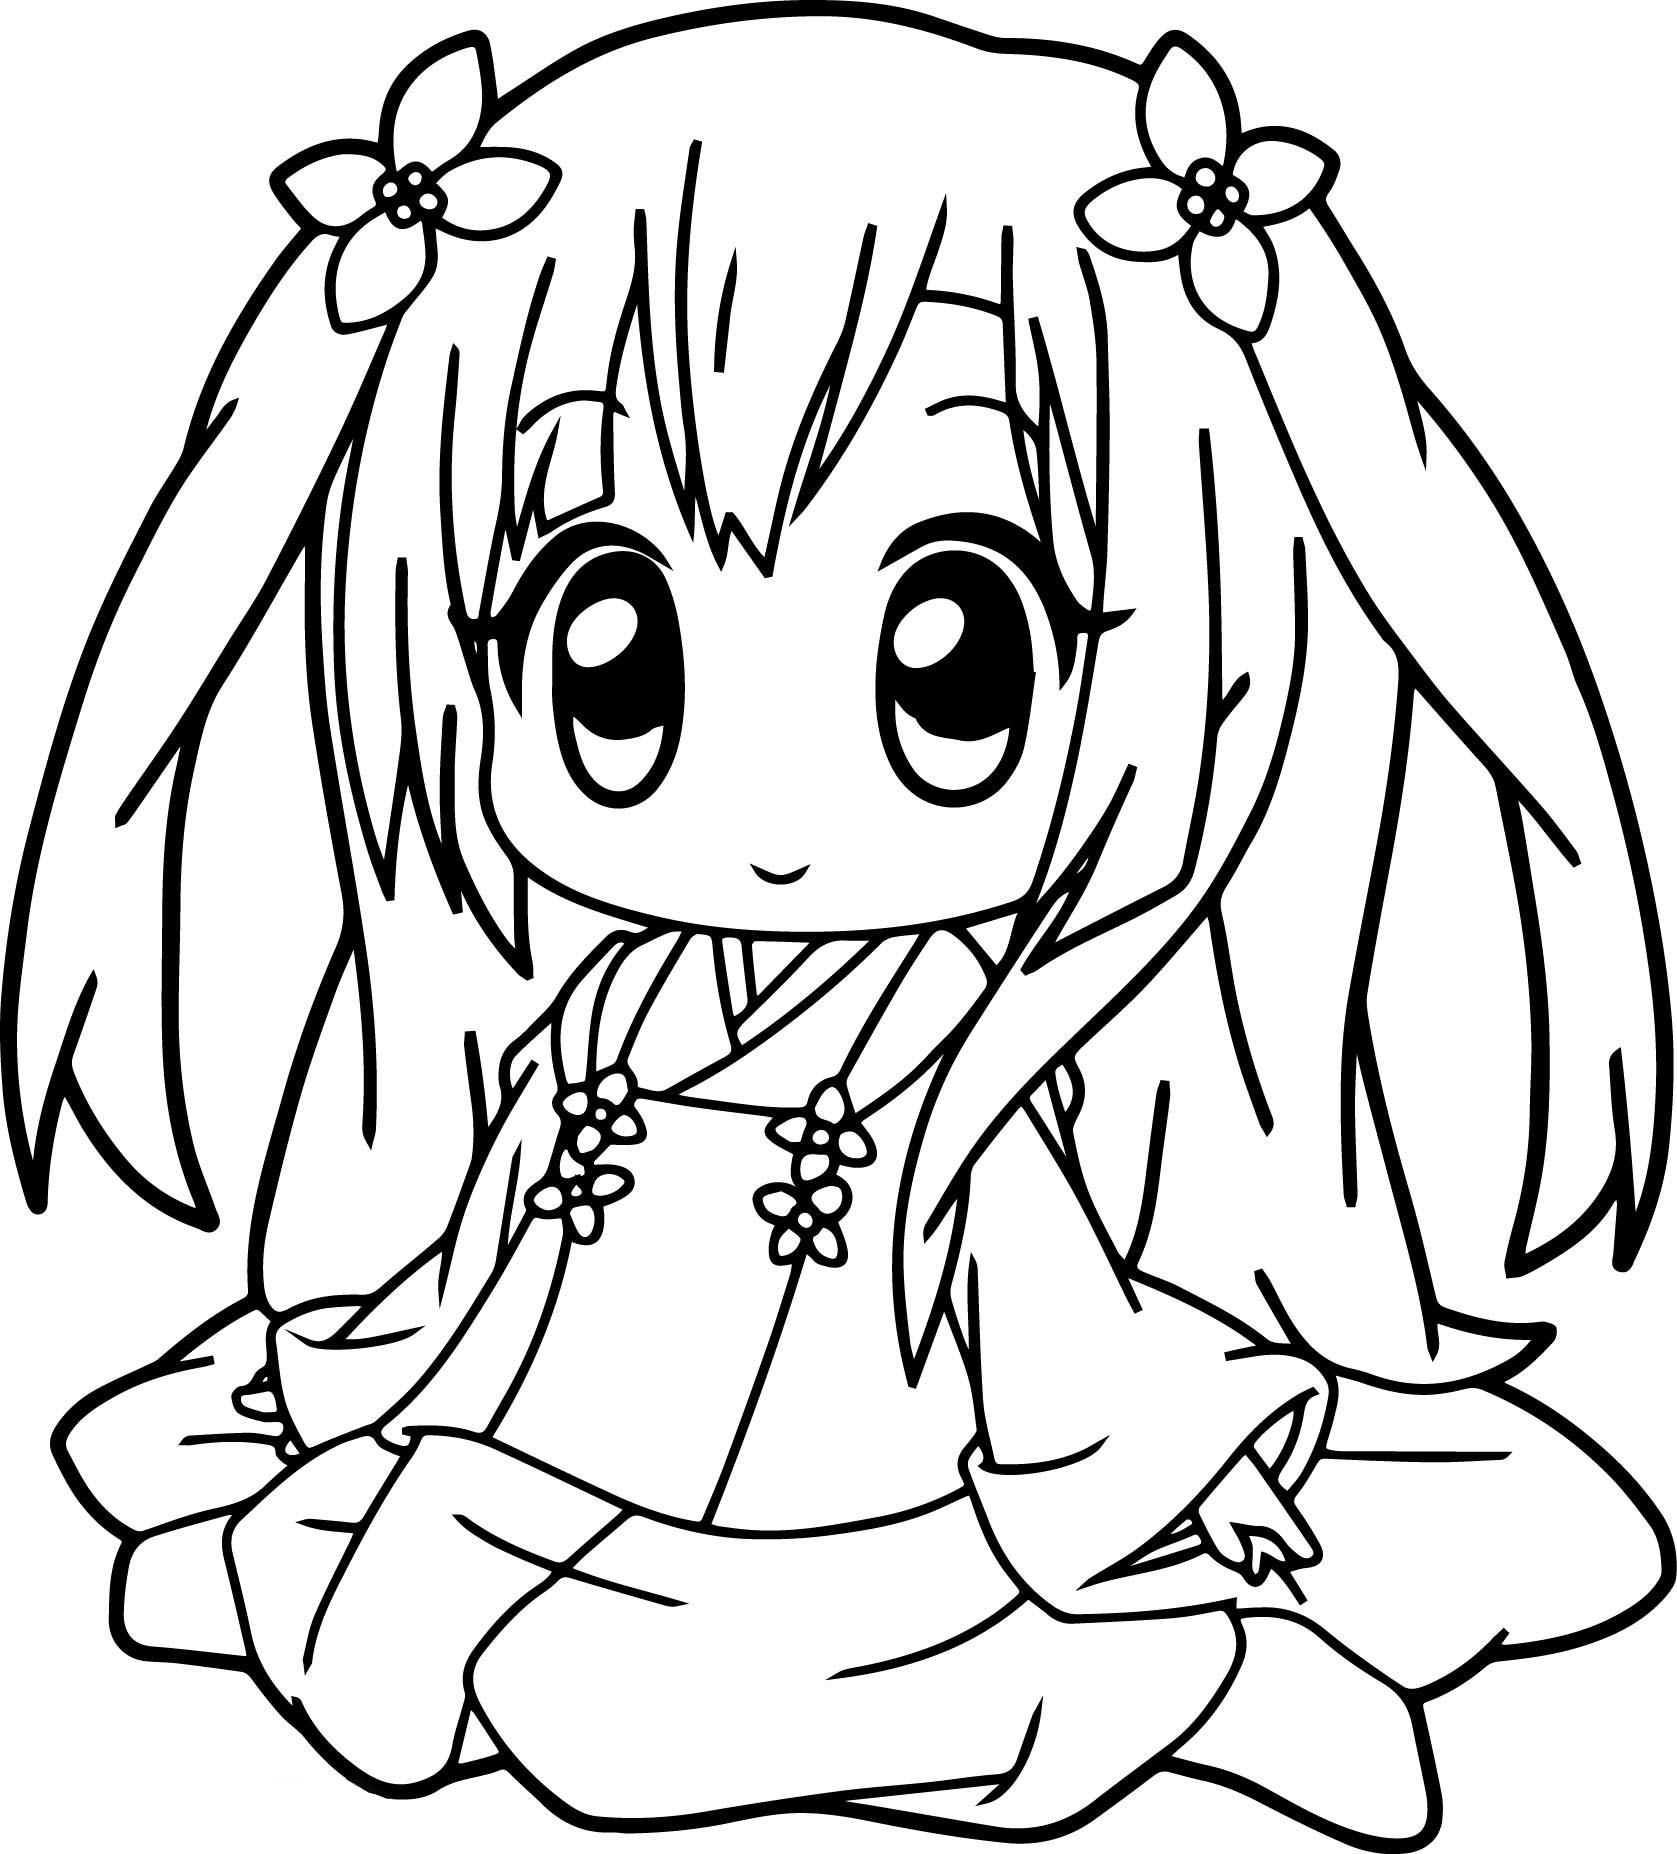 coloring anime pictures coloring pages for girls best coloring pages for kids pictures anime coloring